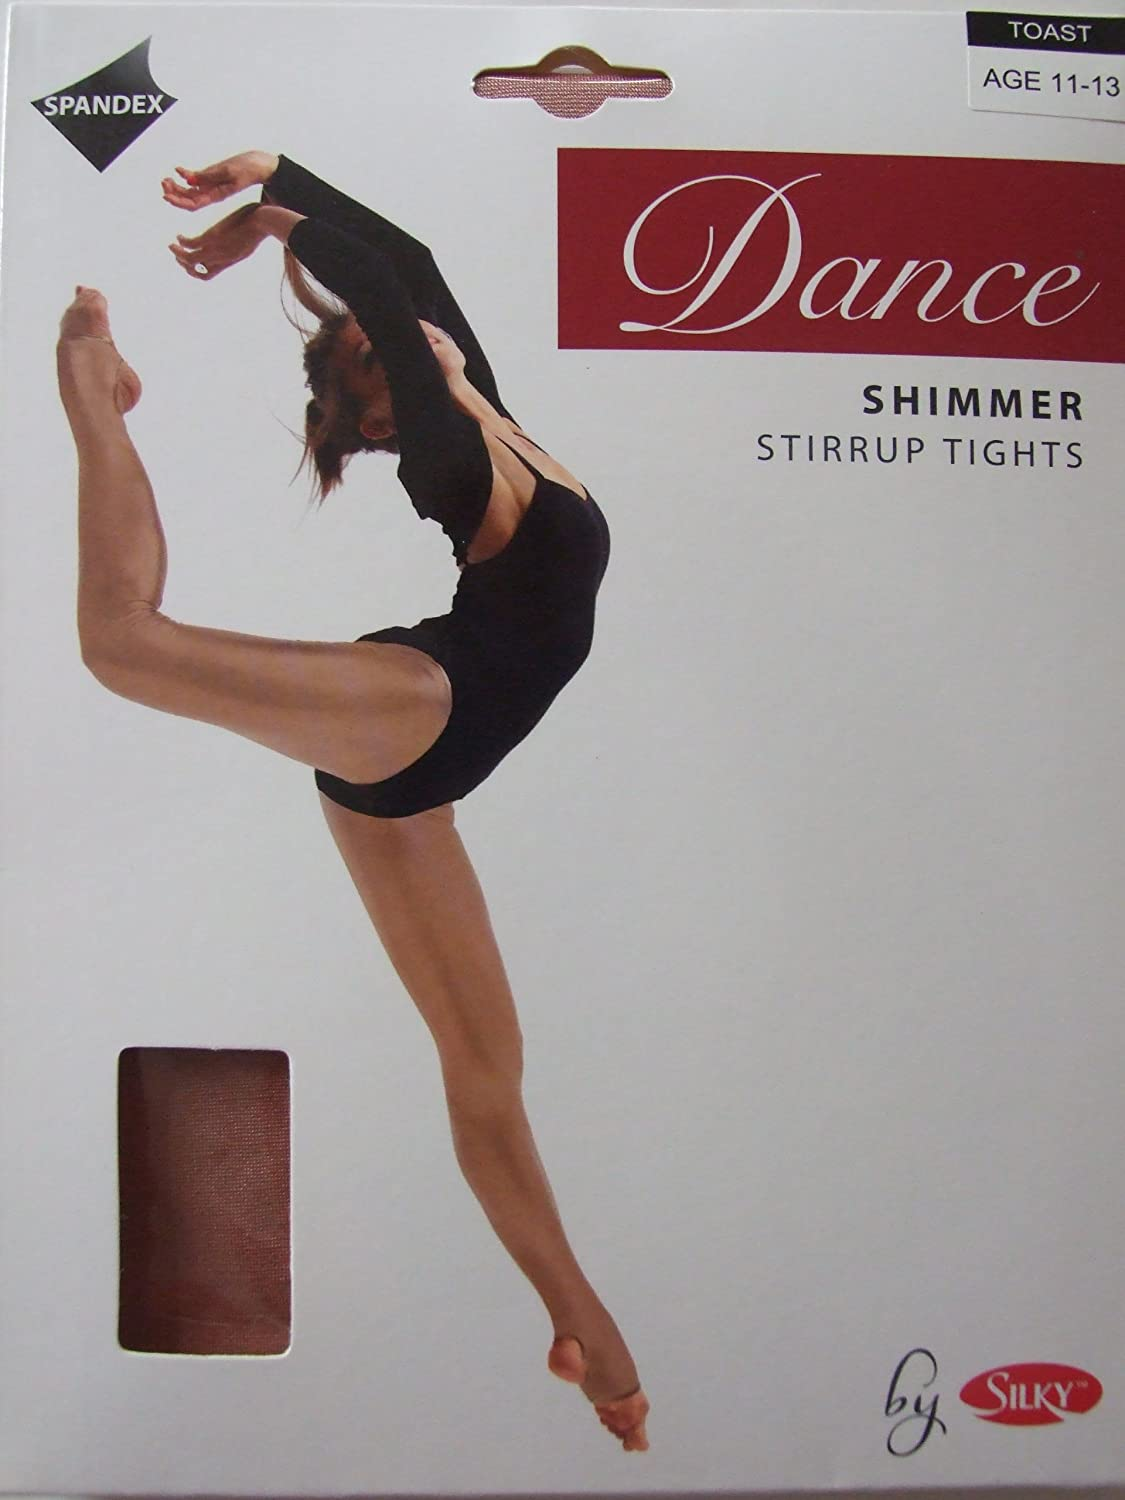 Silky Childs Stirrup Shimmer Tights